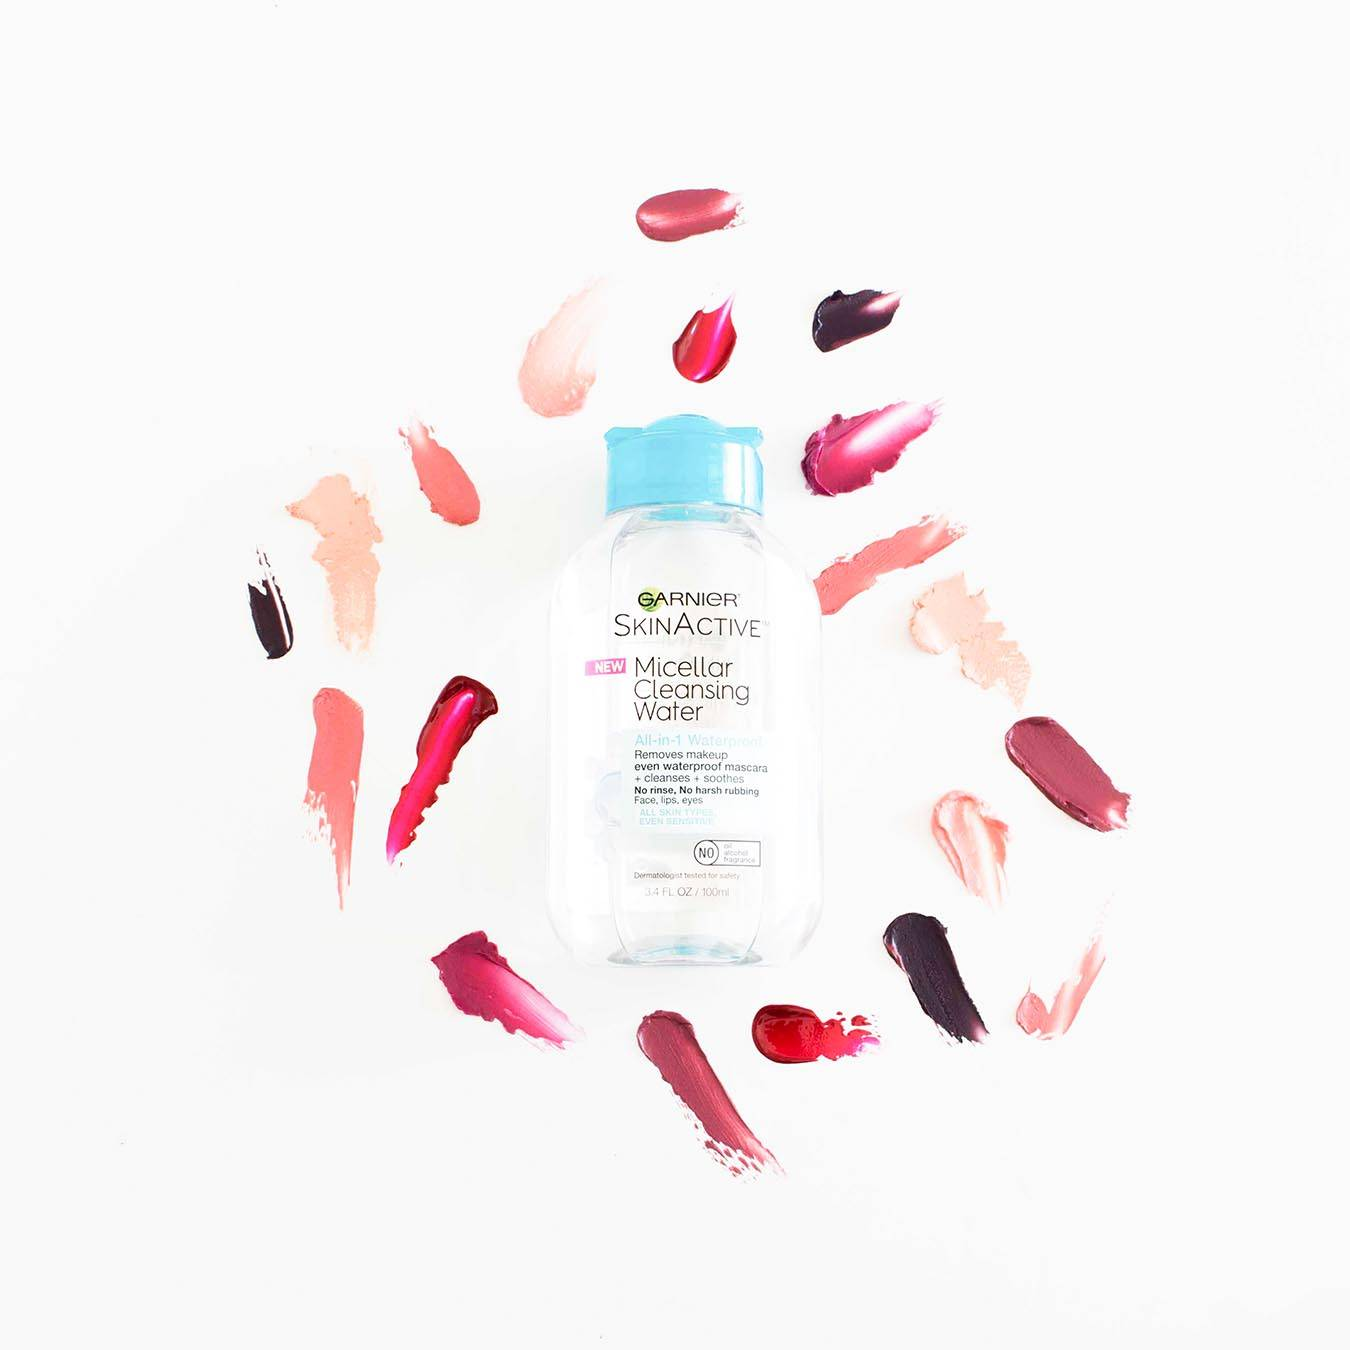 Garnier SkinActive Micellar Cleansing Water All-in-1 Waterproof 3.4 oz with blue lid on white background with various smudges of red and pink lipstick.